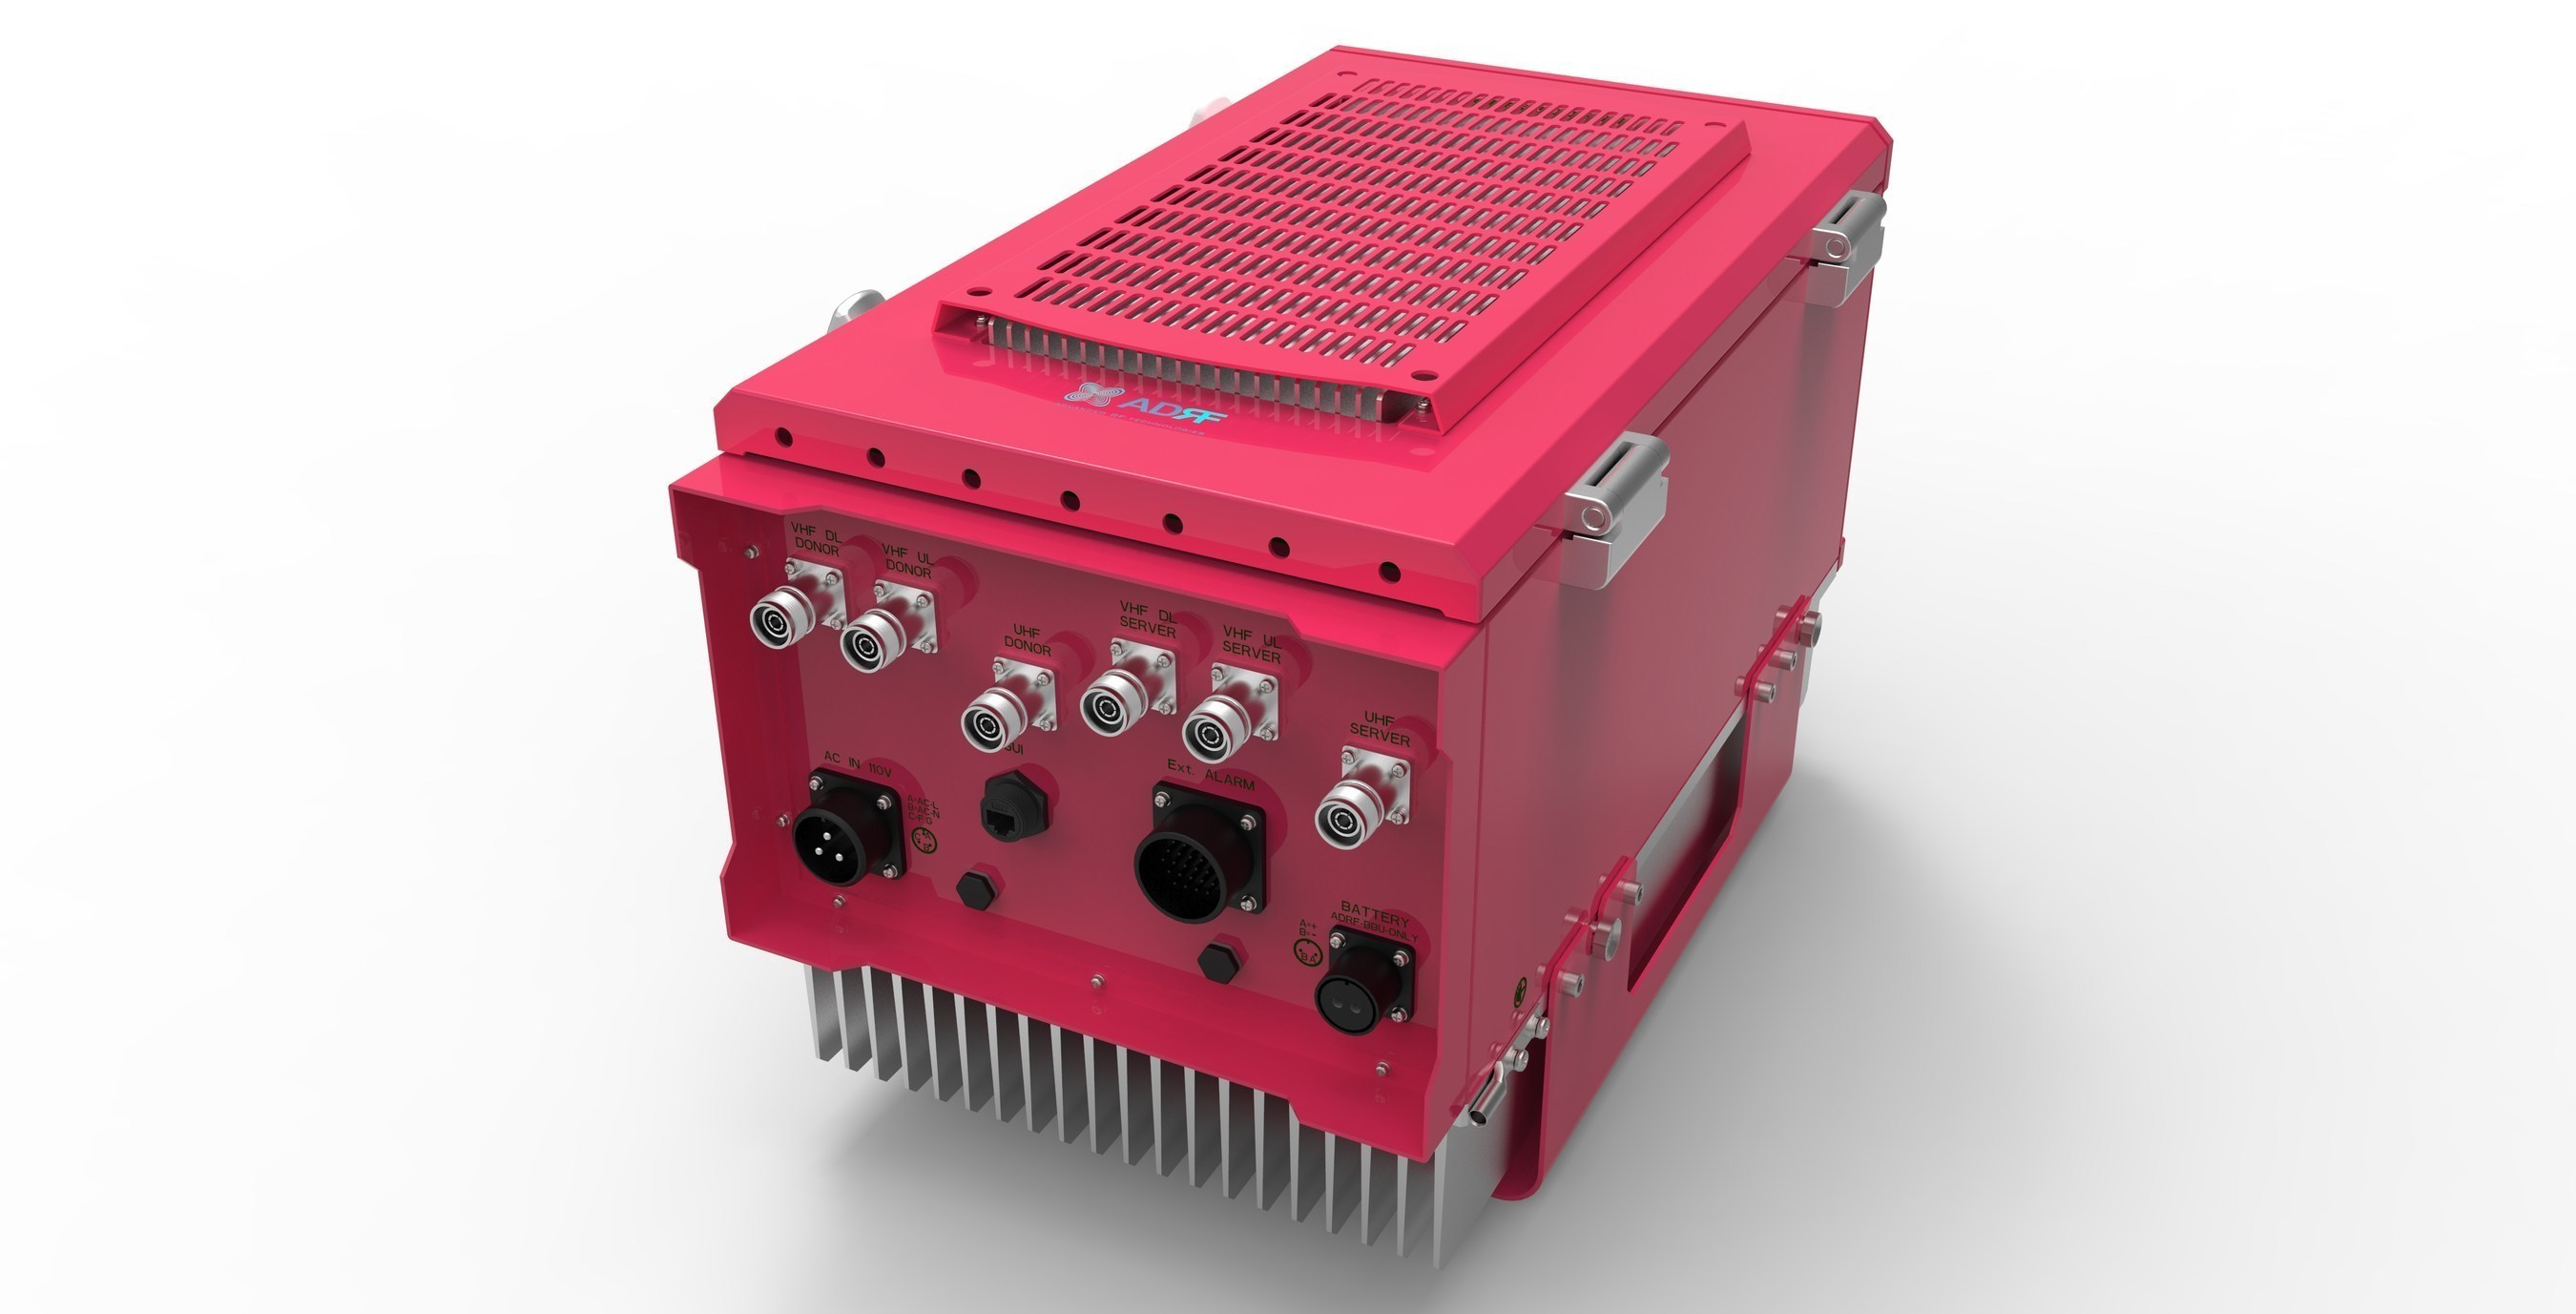 PSR-VU-9537 - ADRF's new VHF and UHF channelized digital repeater